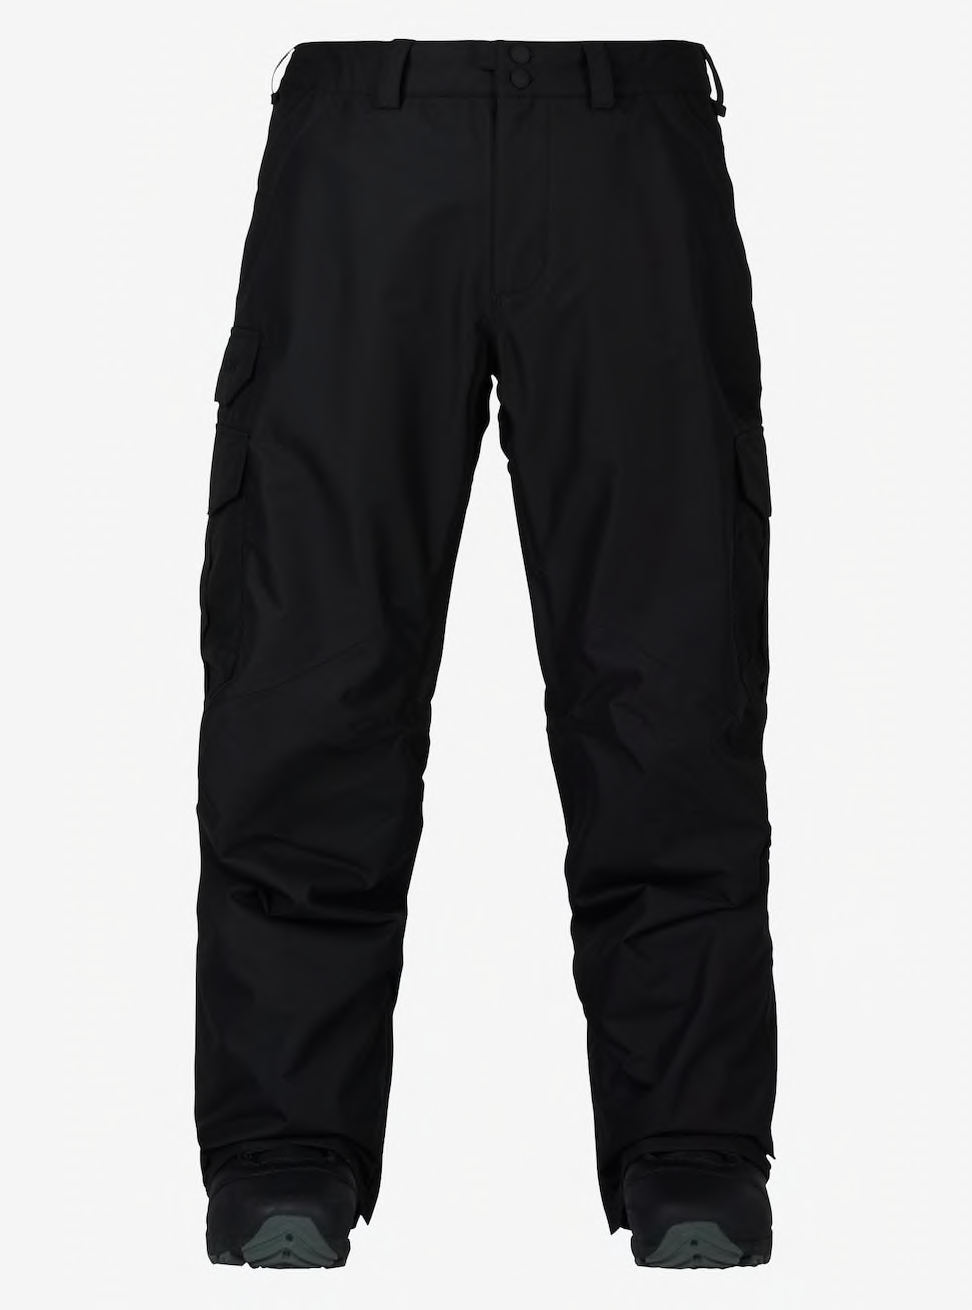 2019 Burton Cargo Pant - True Black